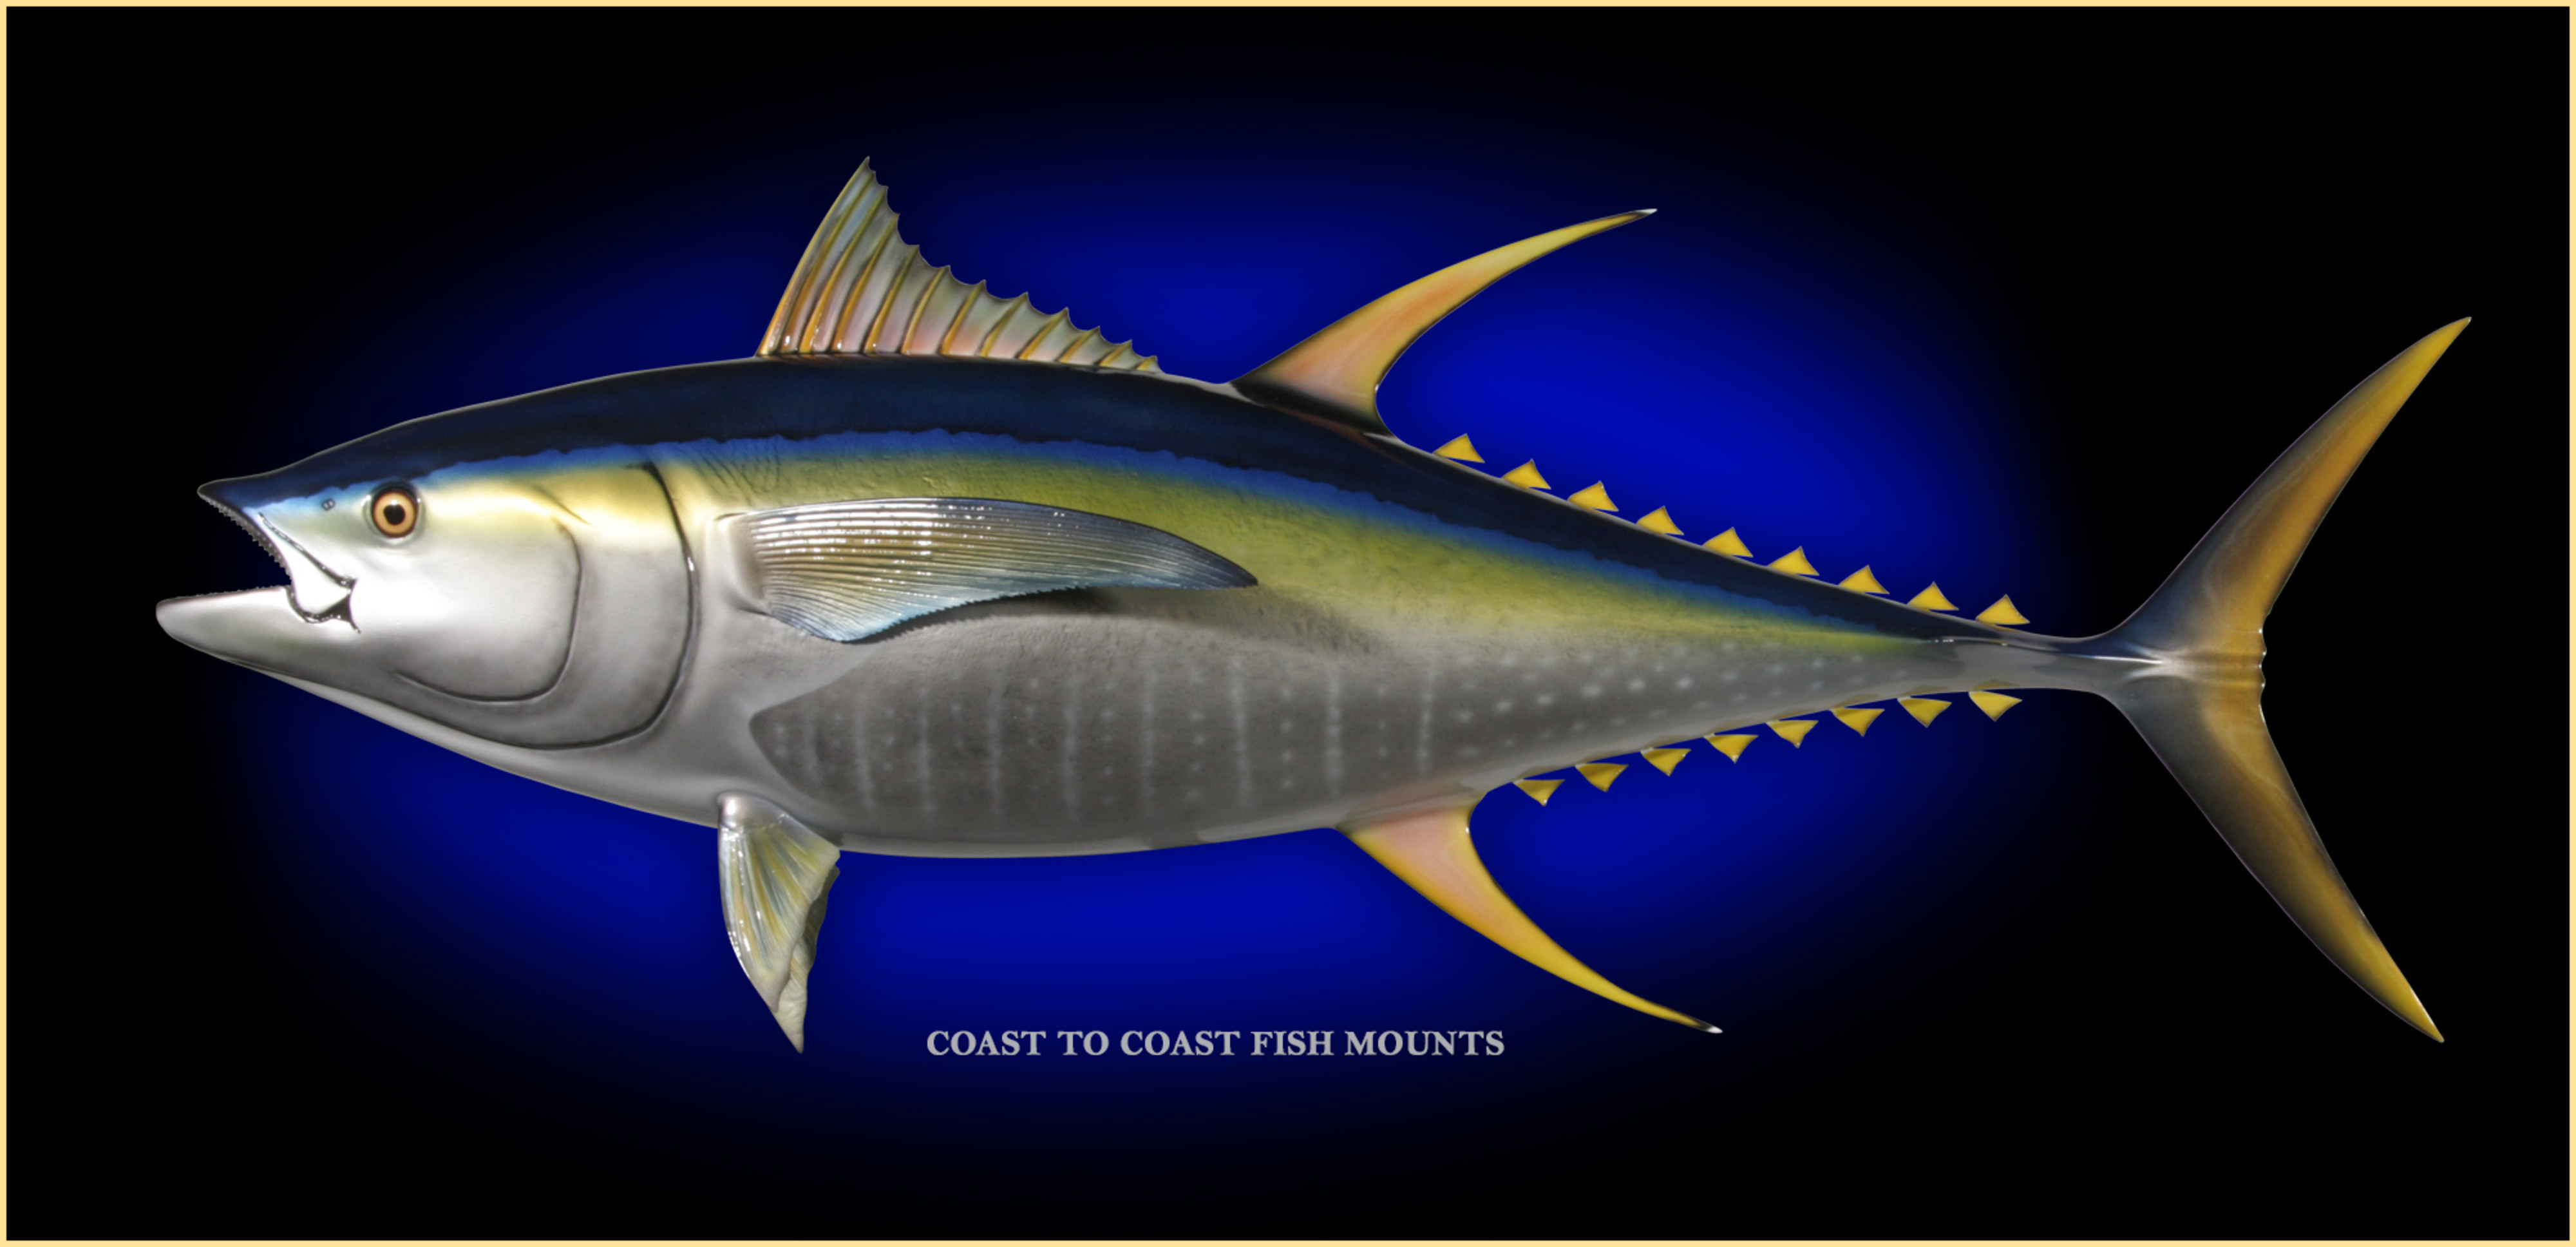 Yellowfin Tuna Fish Mount and Fish Replicas | Coast-to-Coast